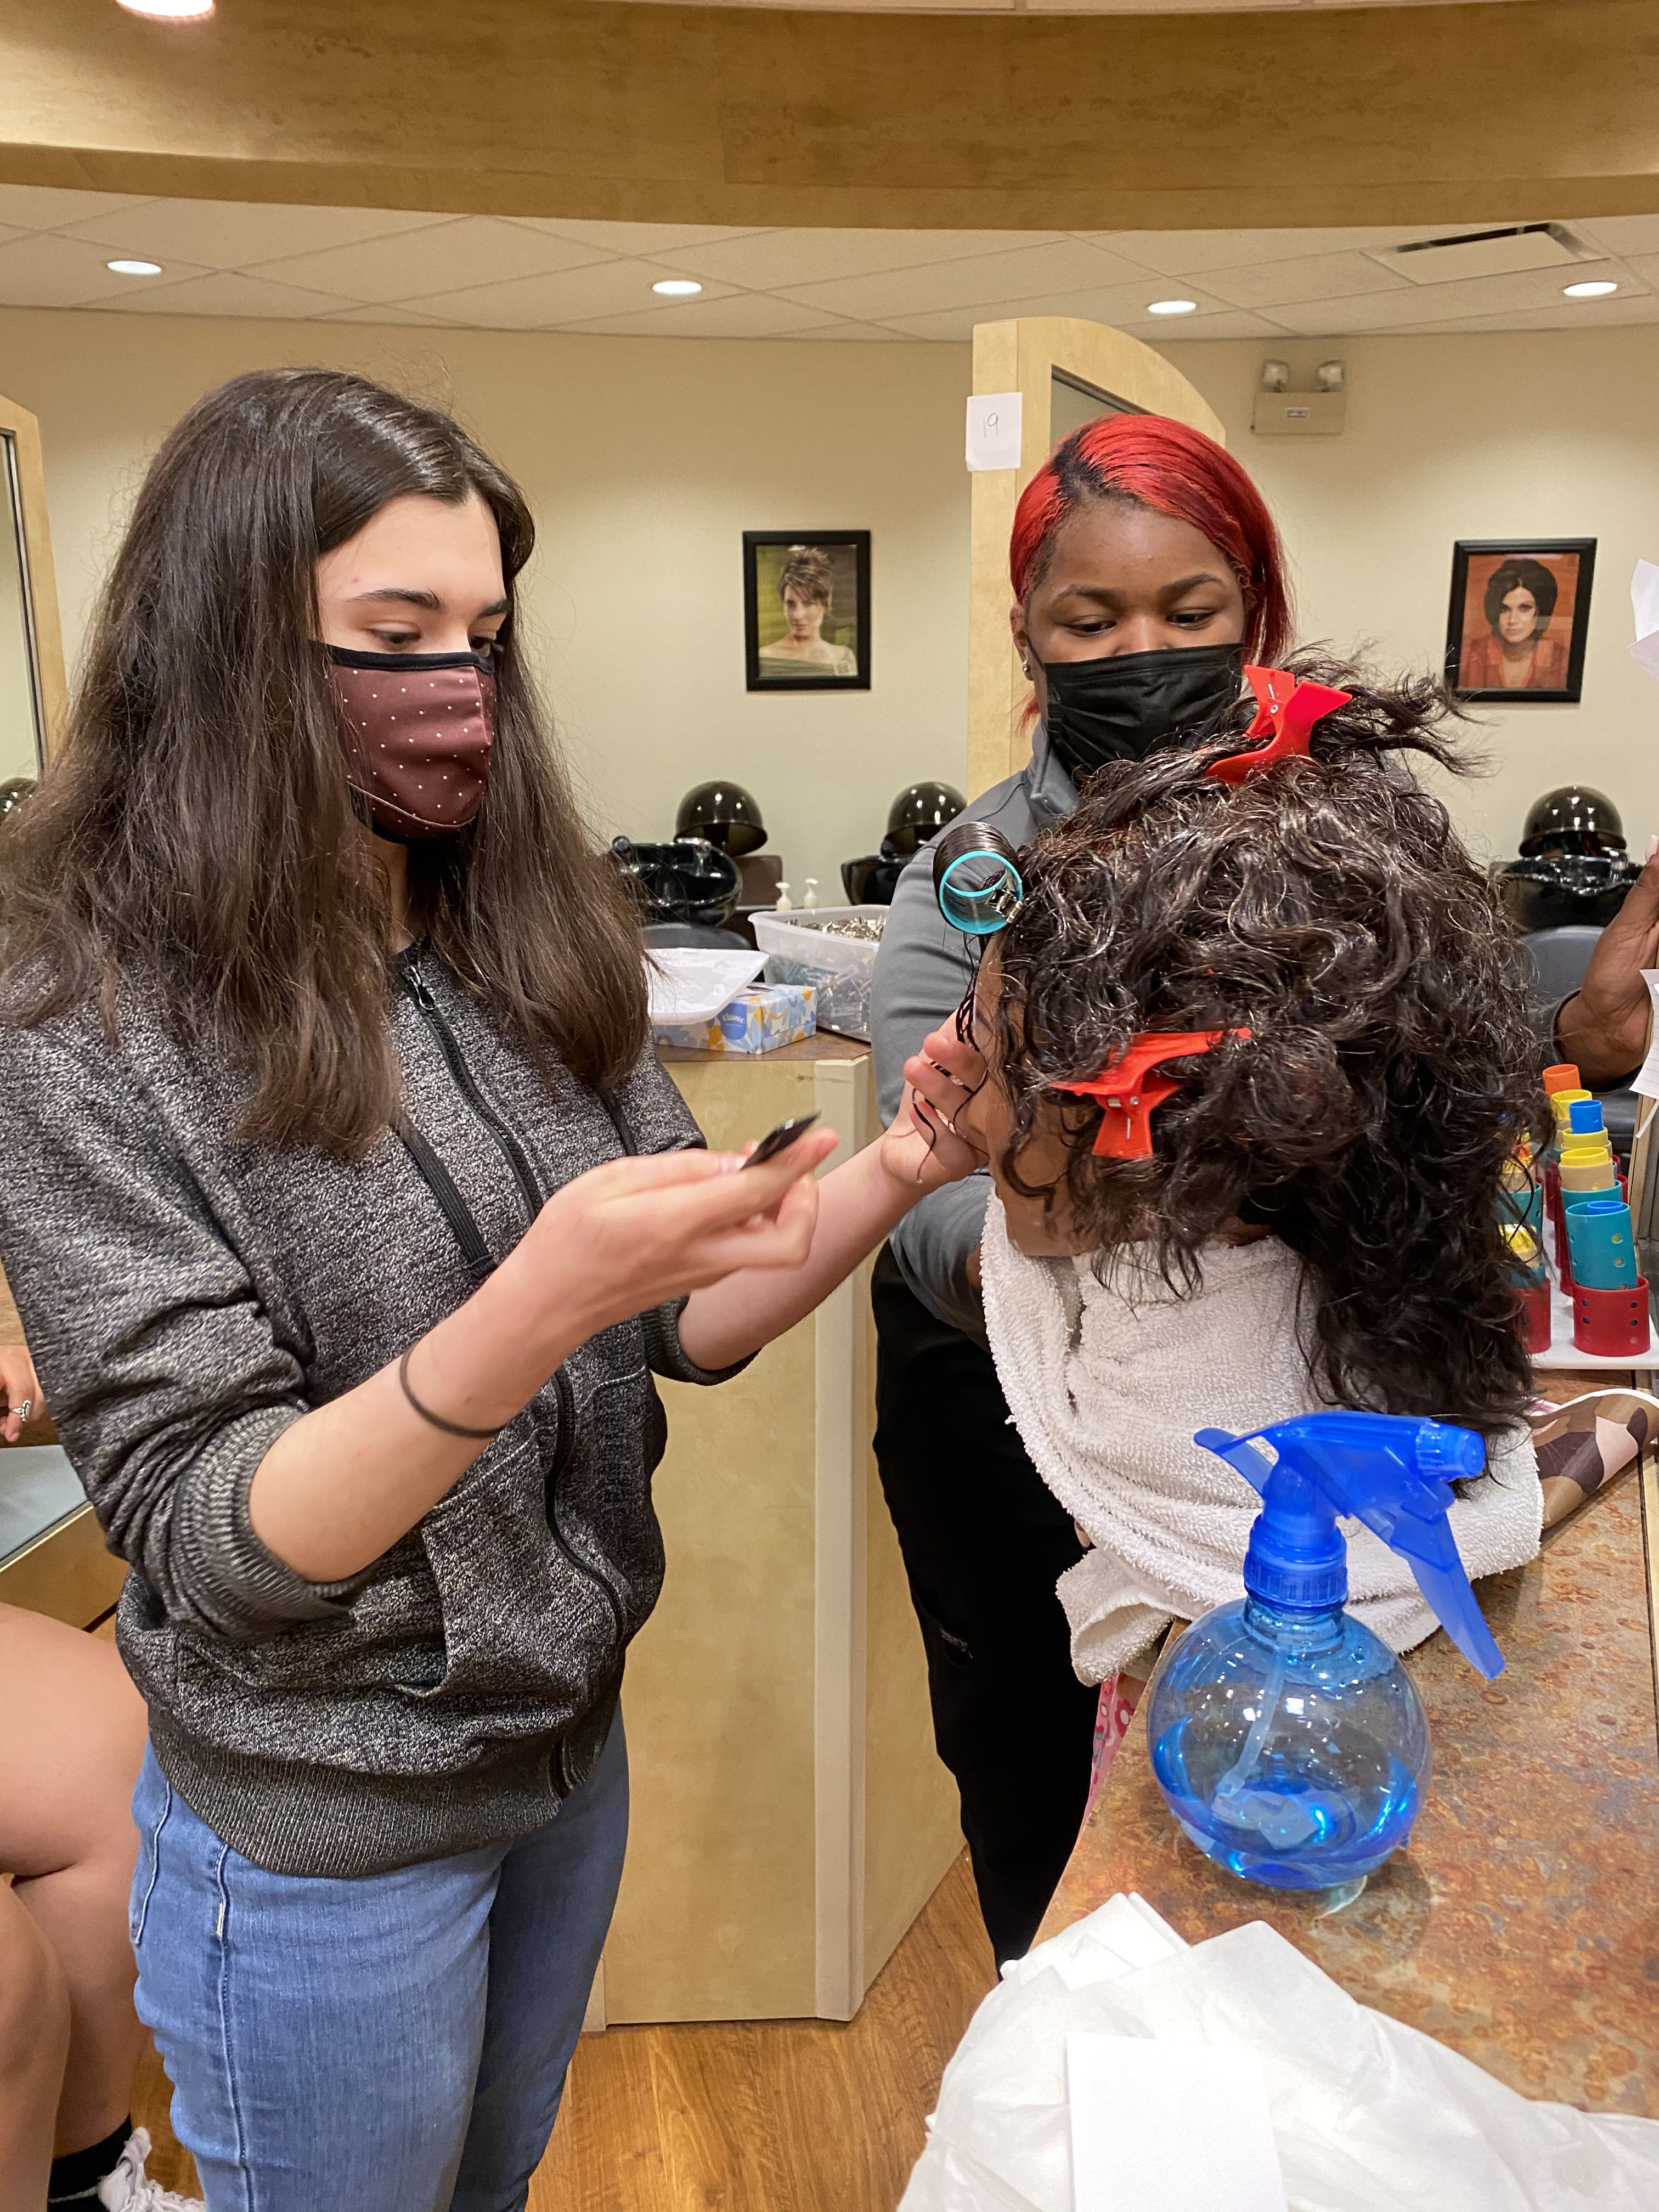 (photo shows a member of the Steel Magnolia cast working with an EFCTS cosmetology student to prepare materials for the upcoming show. credit: Tim Browning)